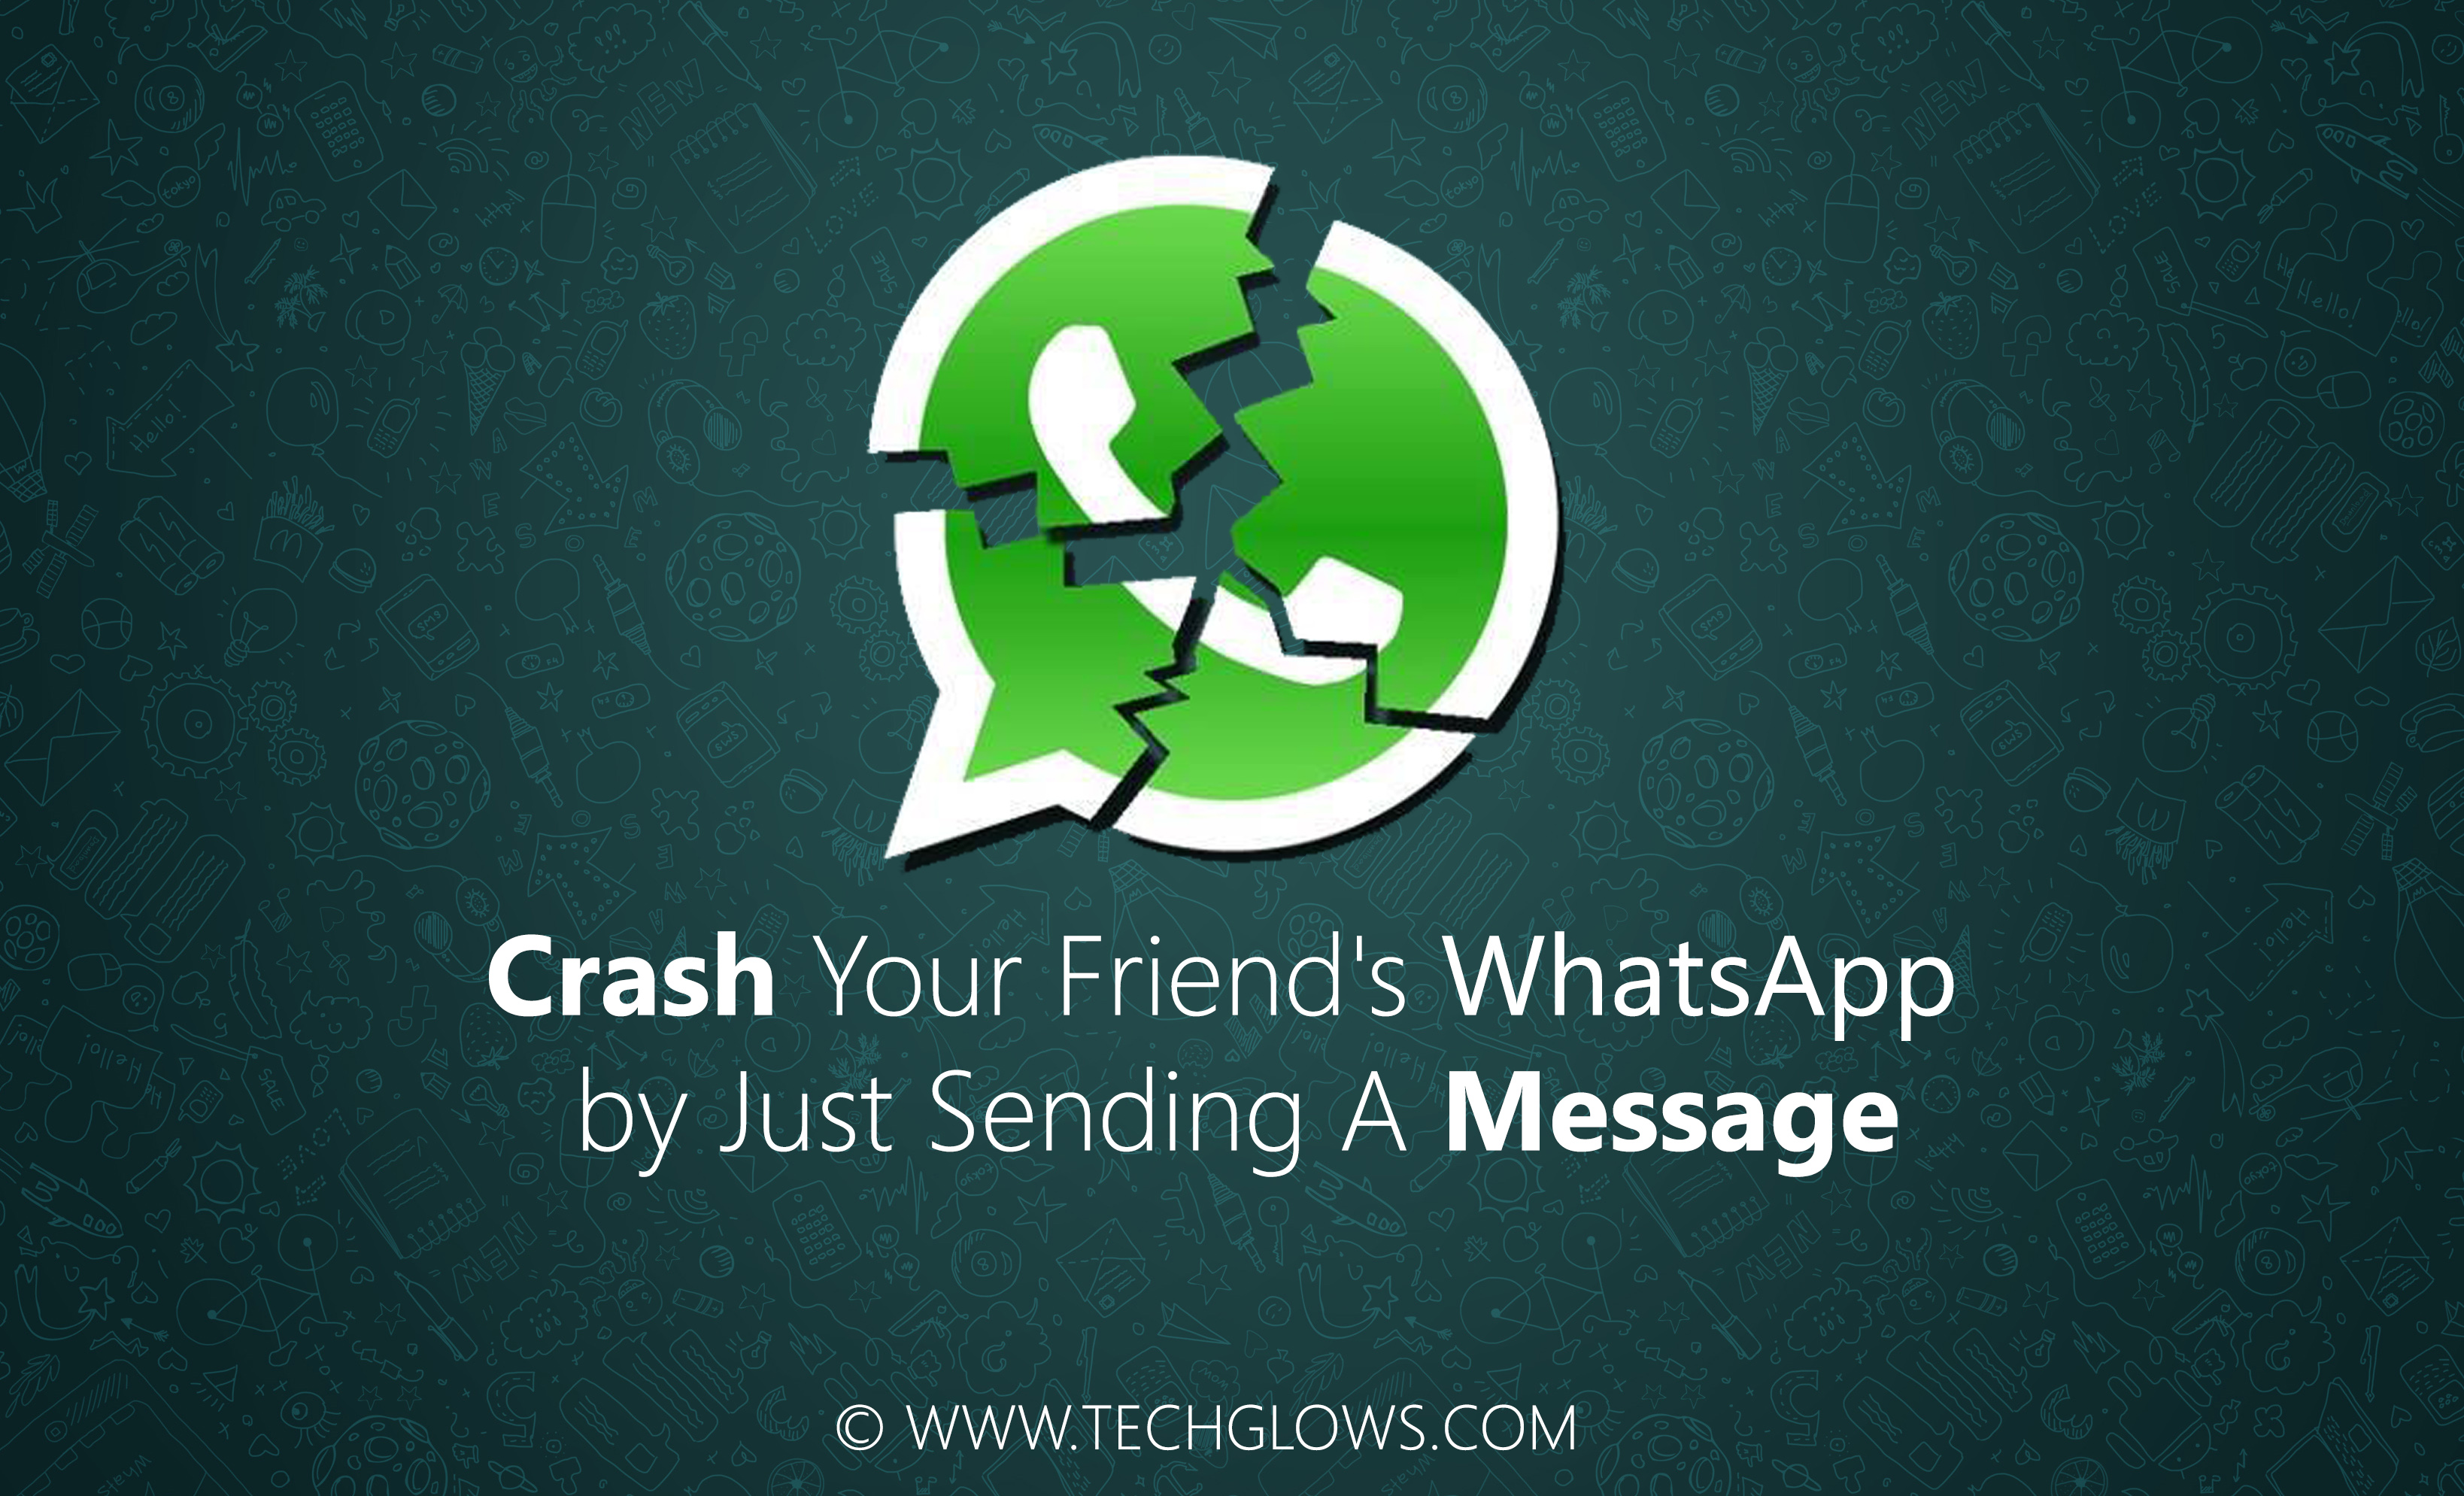 Trick to Crash Your Friend's WhatsApp by Just Sending A